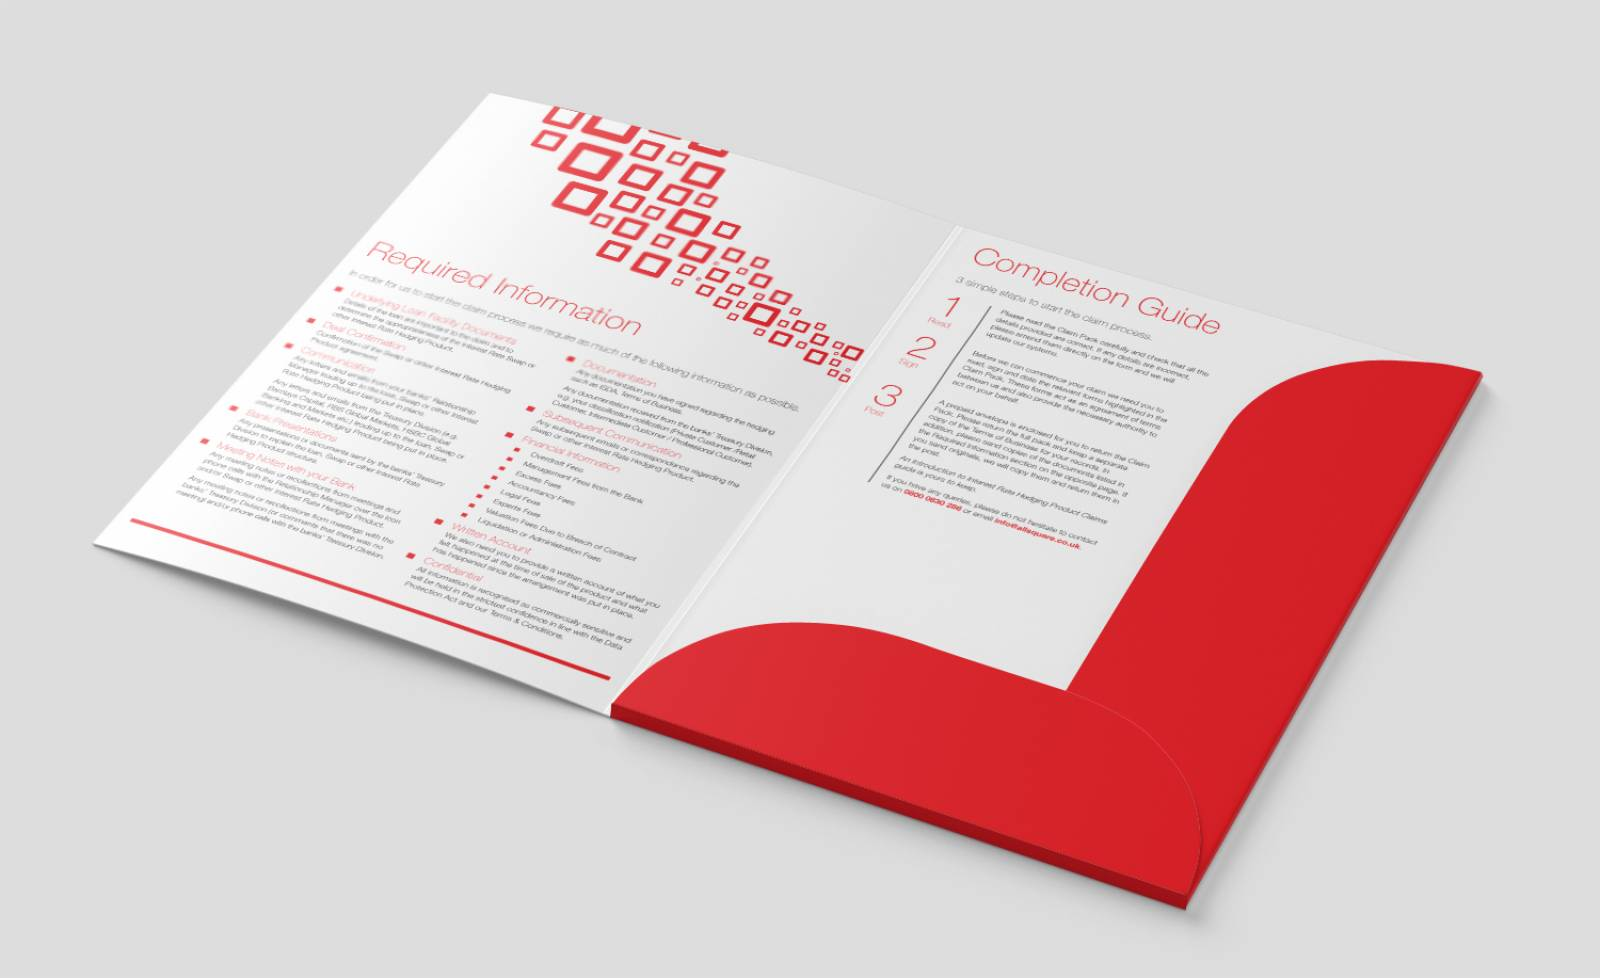 Folder-All-Square-Canterbury-Graphic-Design.jpg